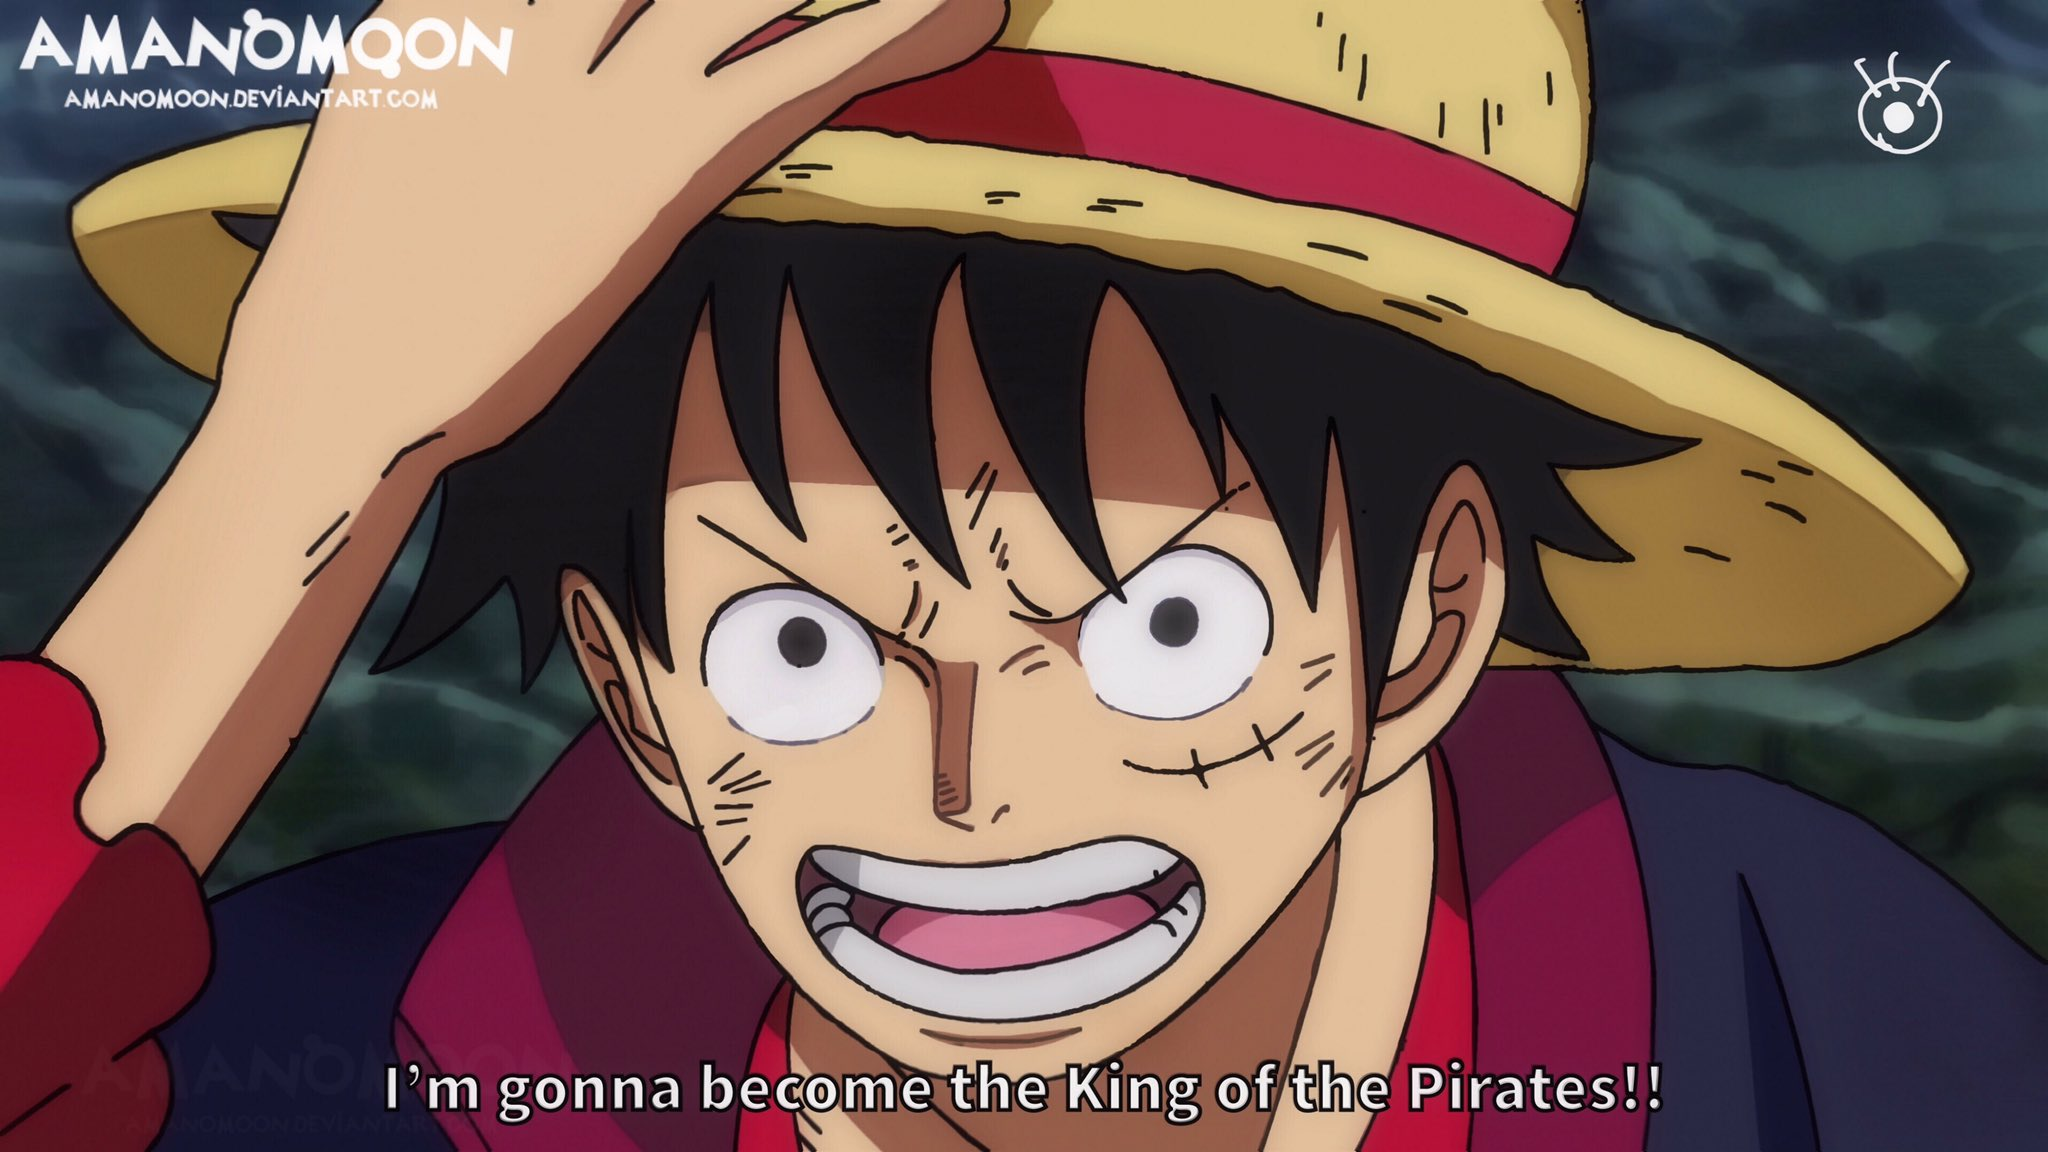 One Piece Chapter 1001 will reveal Luffy's major blow, Kaido backstory, Spoilers, Release Date